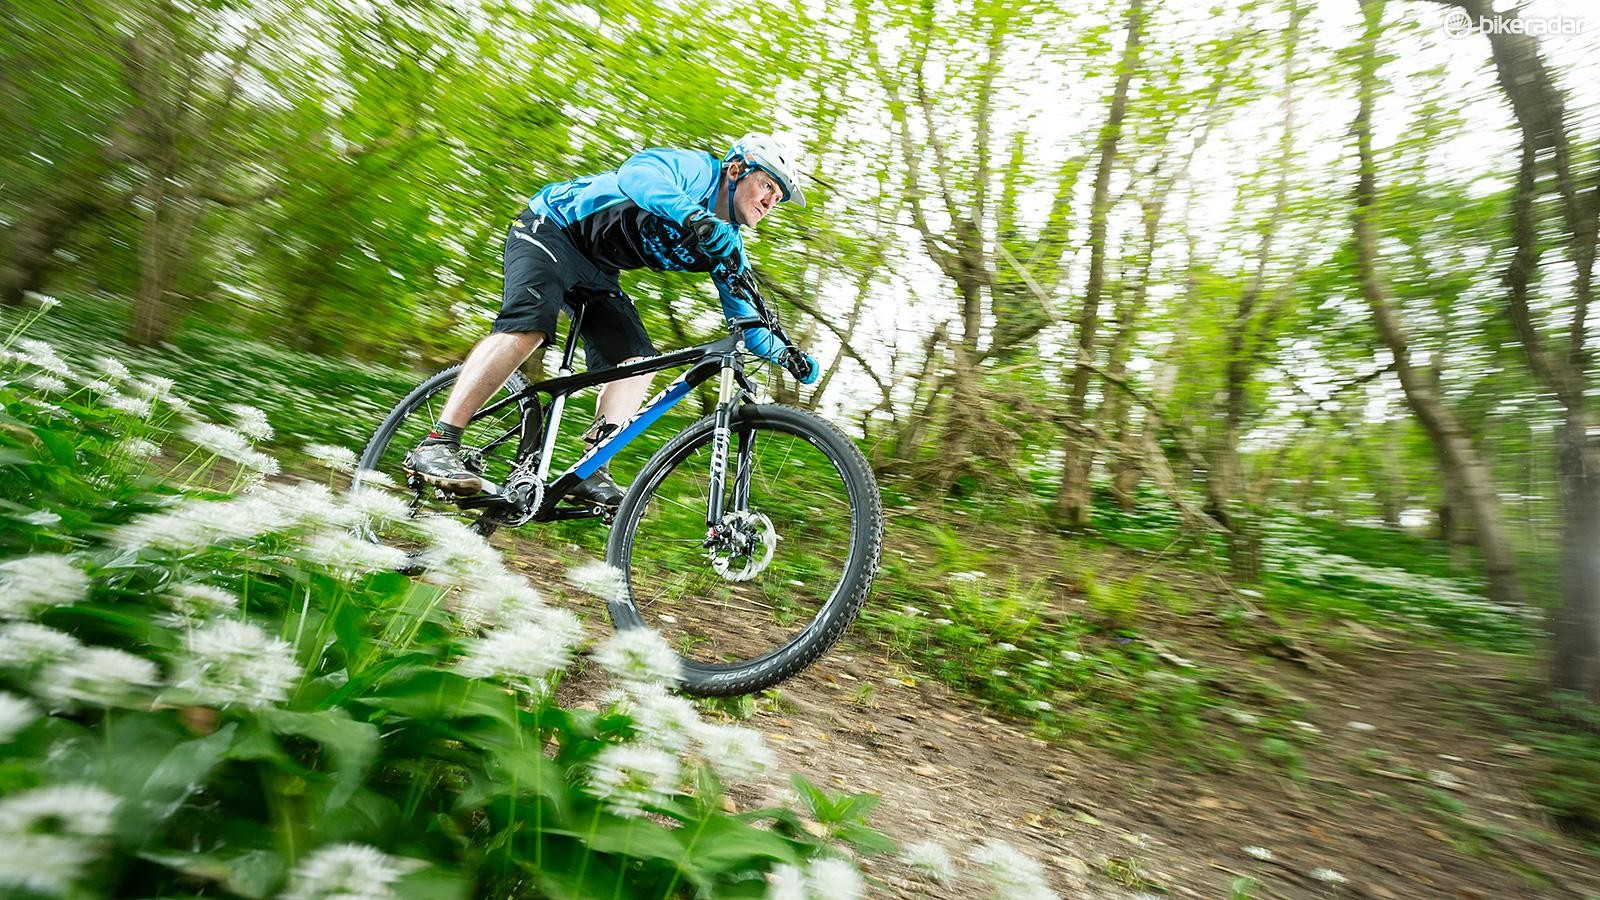 The Rebel Nine's steep angles mean there's no room for complacency on descents